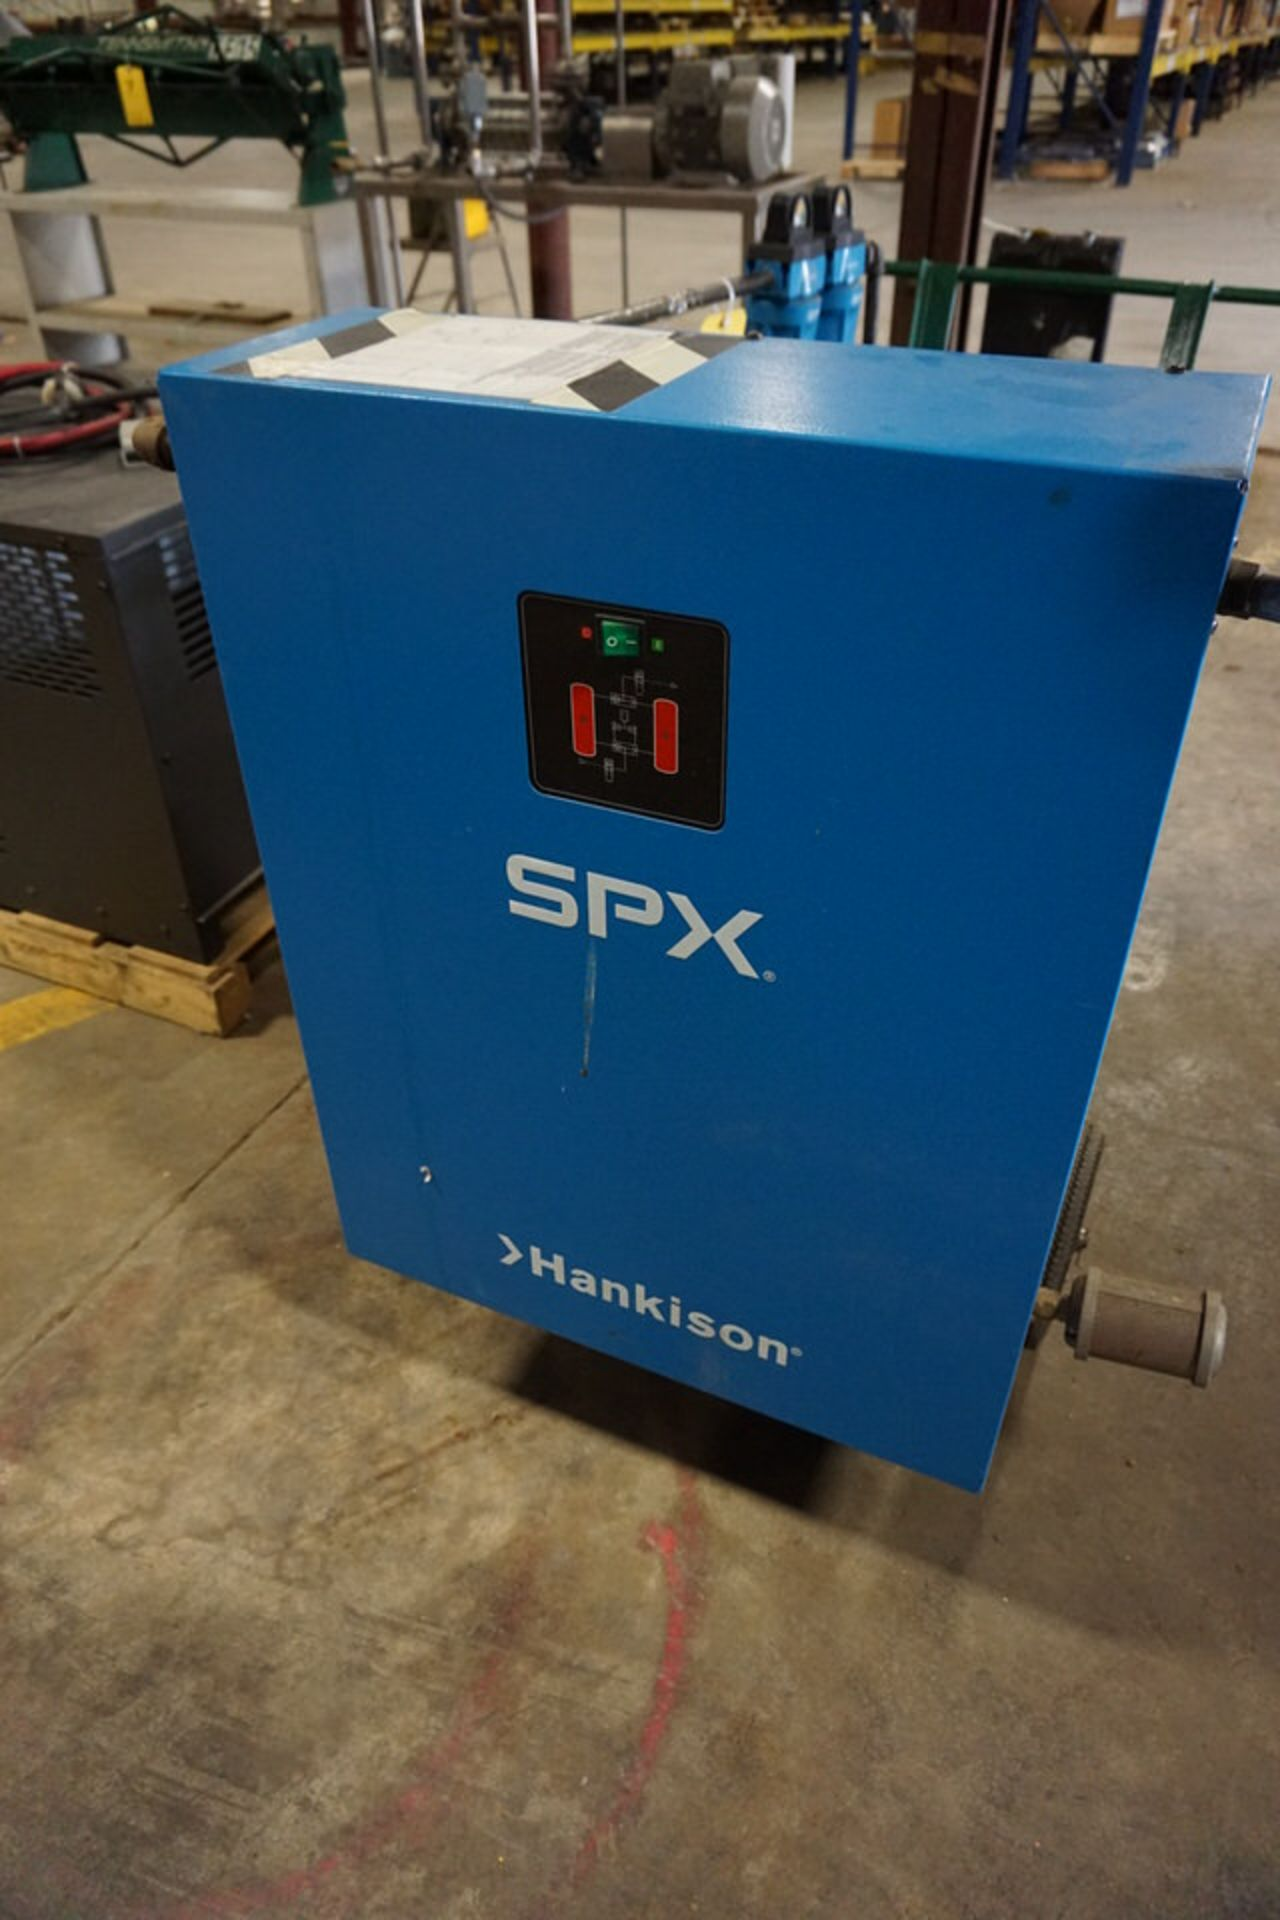 Lot 27 - ROLAIR PORTABLE AIR COMPRESSOR, MDL: 5230K30-0095, 5HP (Location: 903 Blue Starr, Claremore, OK